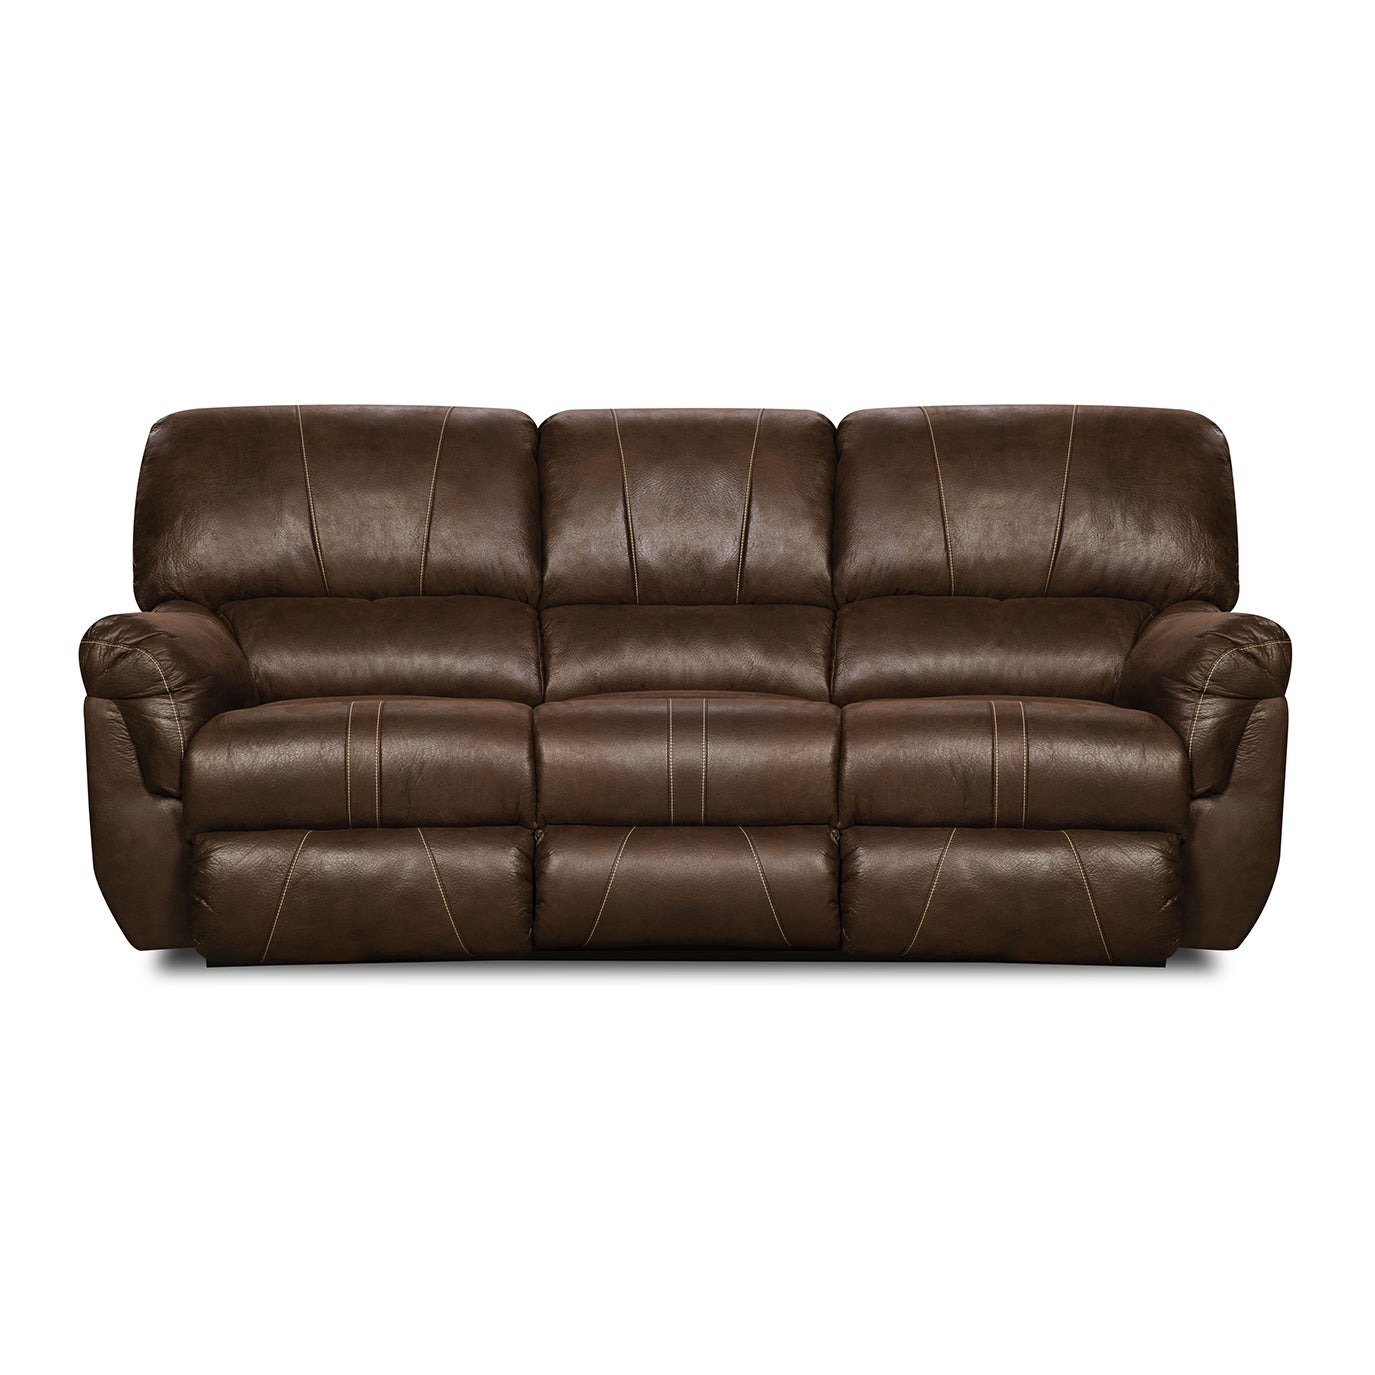 Simmons Upholstery Renegade Mocha Beautyrest Motion Sofa   Free Shipping  Today   Overstock   18378036